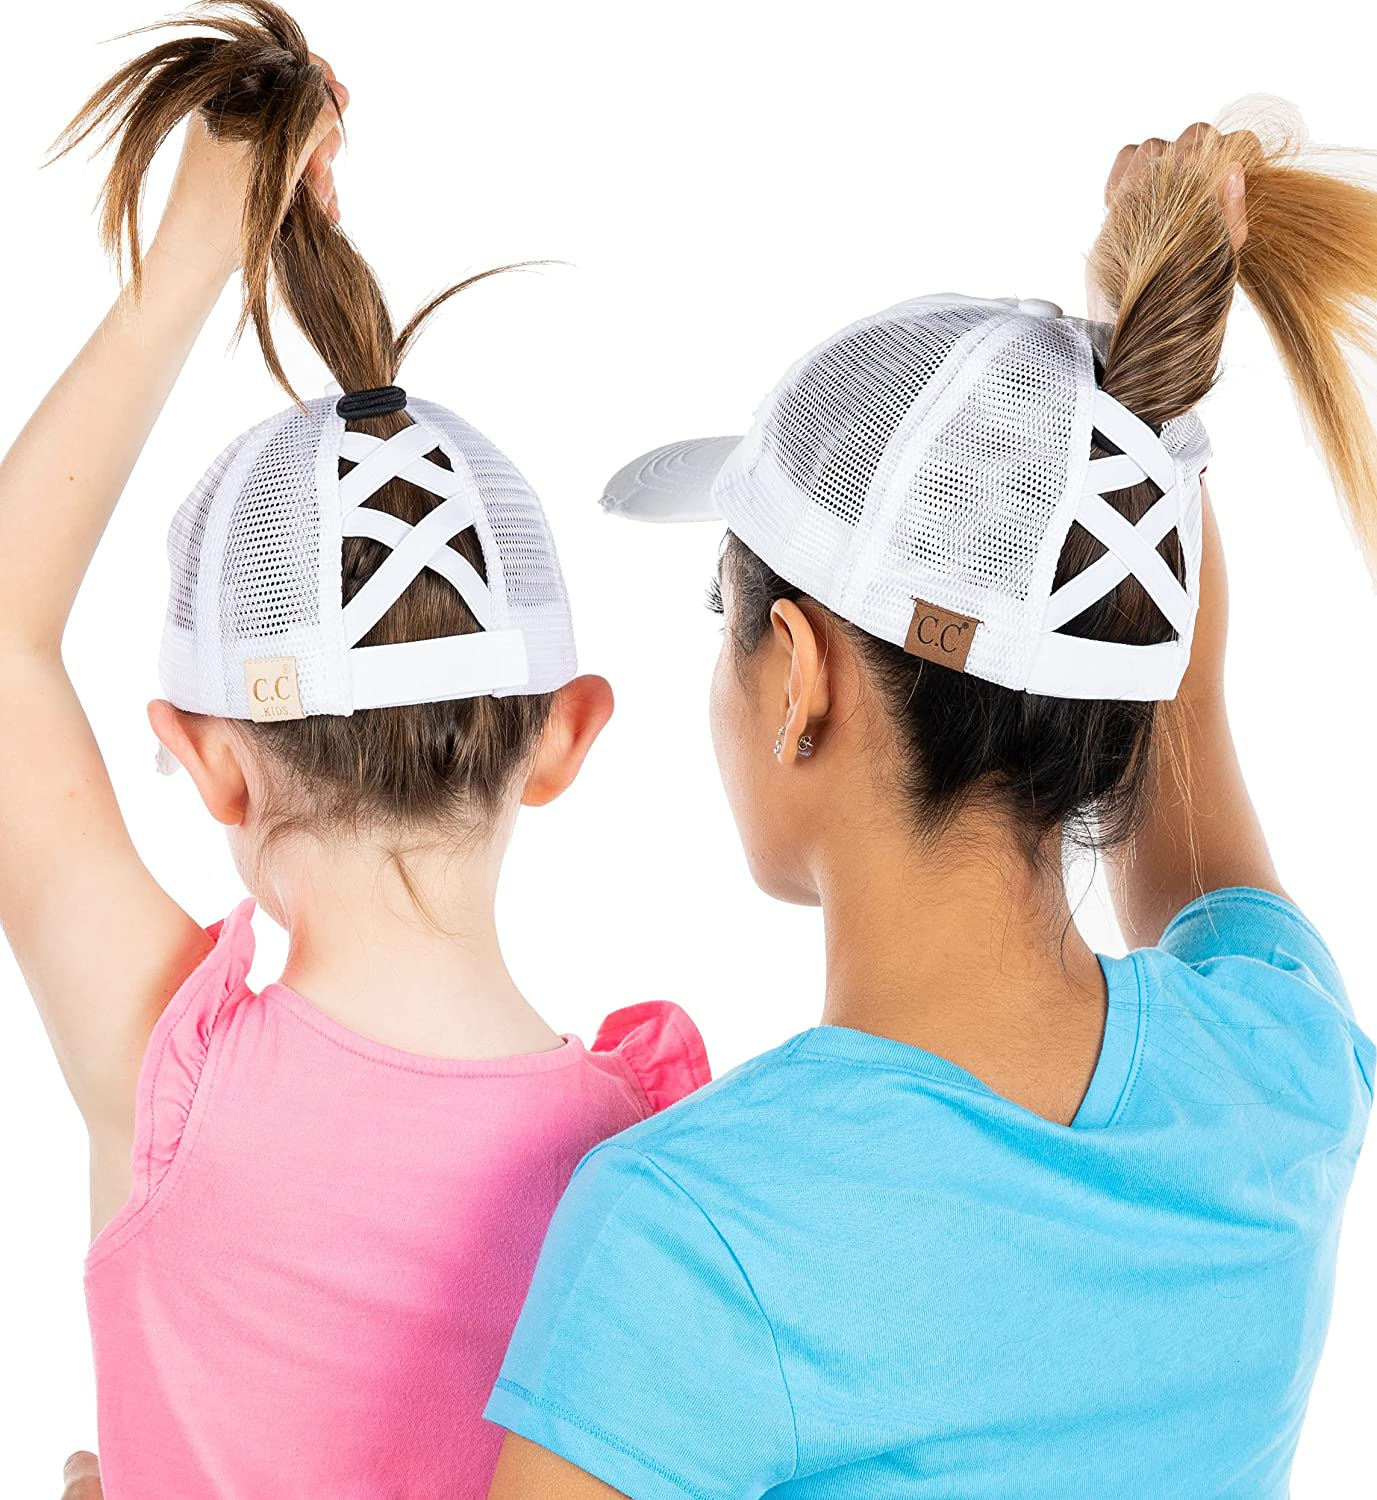 Mommy and me Criss Cross Hat White Spasm price Fixed price for sale 2 Pack Bundle: